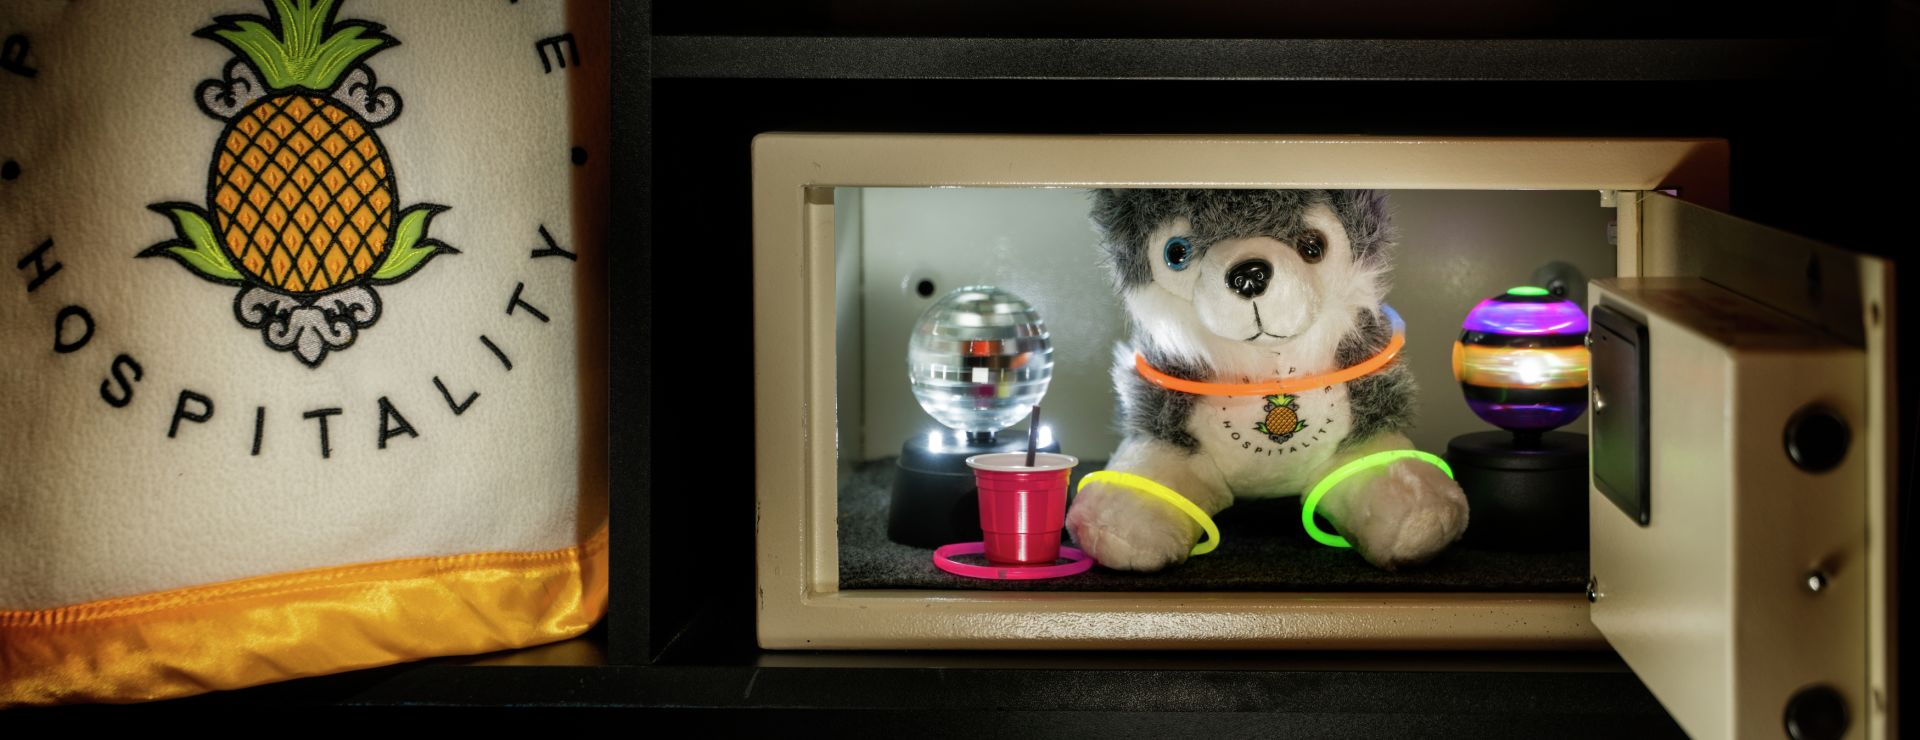 Dash doll in guestroom safe with glow bracelets and disco ball